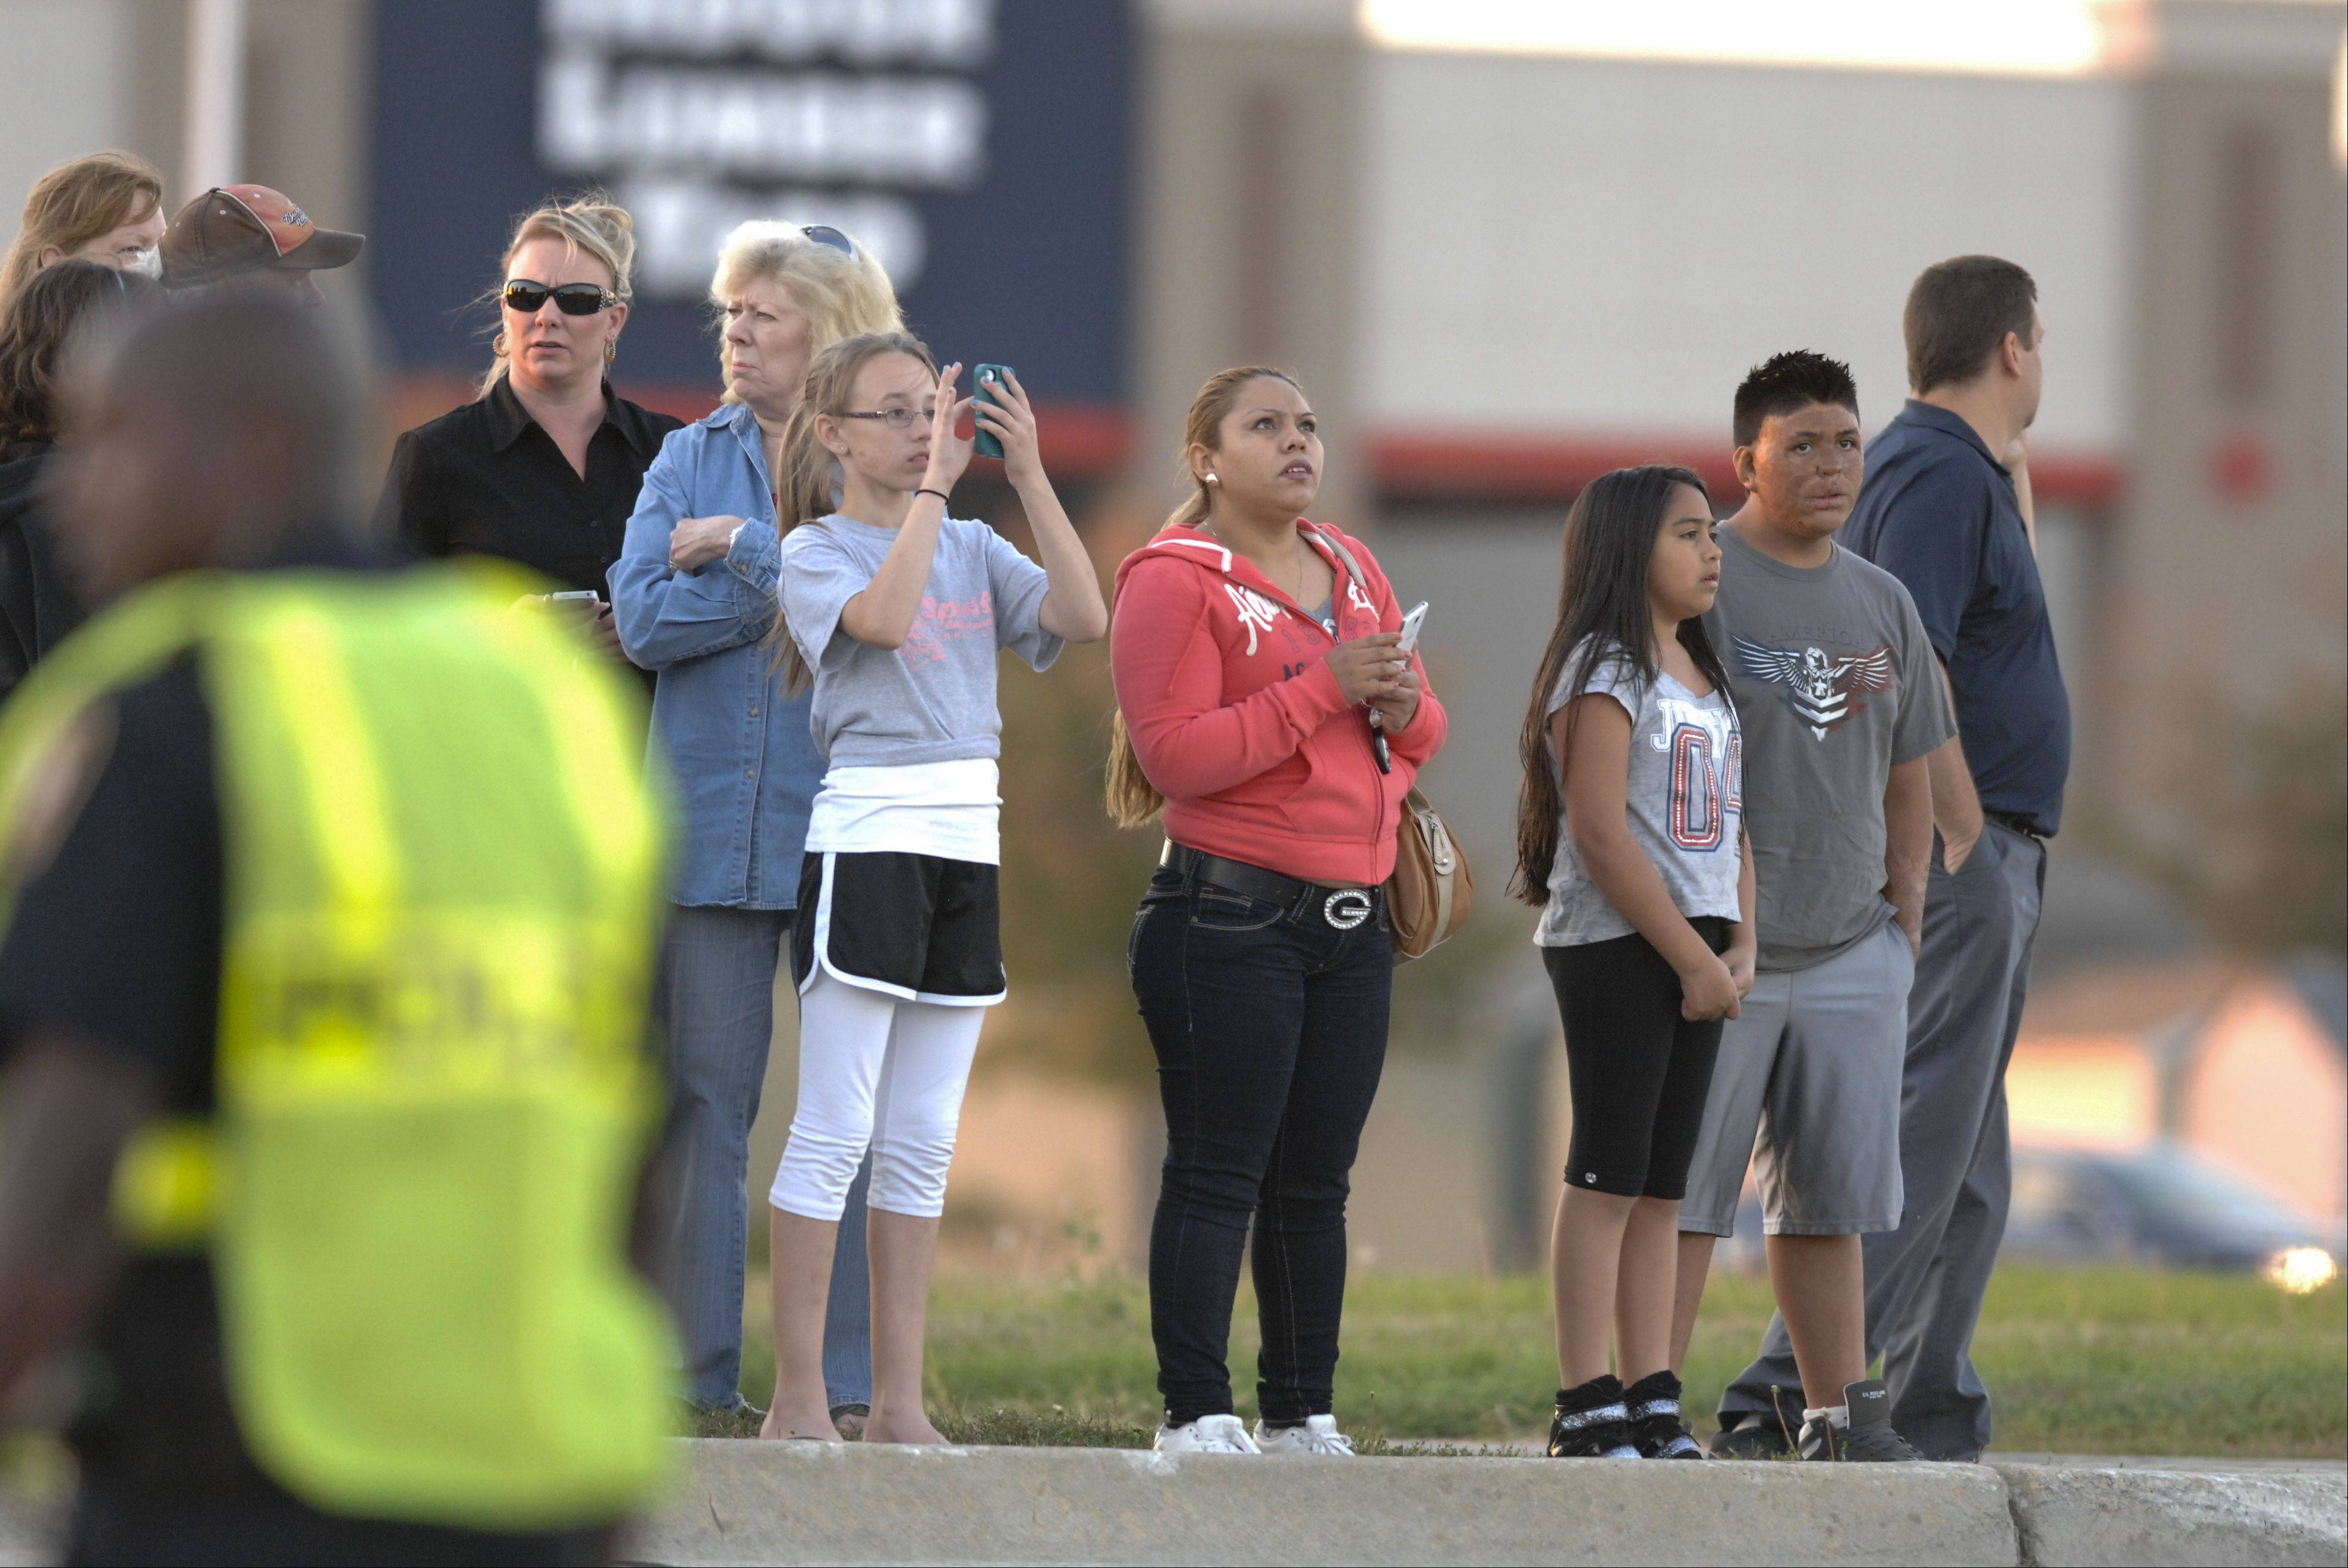 Onlookers take photos and watch Wednesday as investigators examine the site of a plane crash in the parking lot of a Chase bank on Weber Road near the Clow International Airport in Bolingbrook.